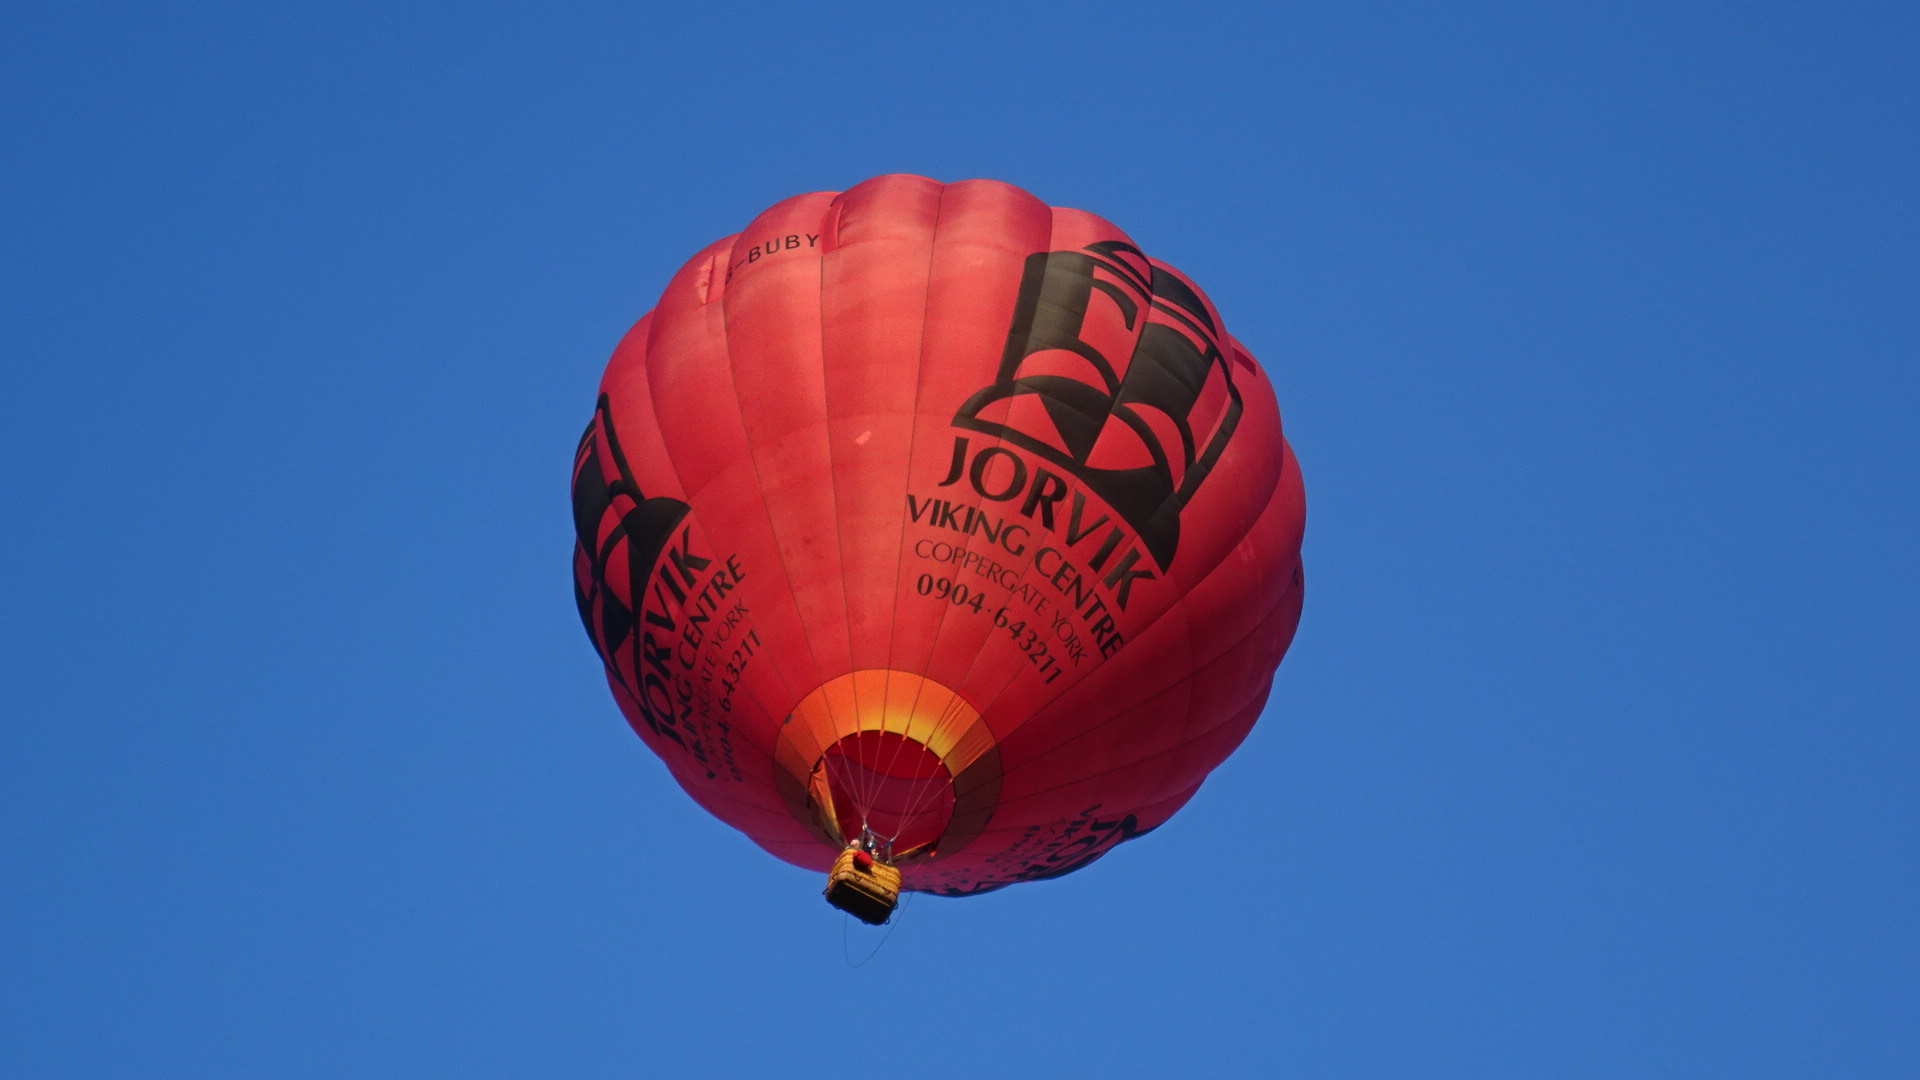 File:Hot air balloon in flight, Strathaven Balloon Festival